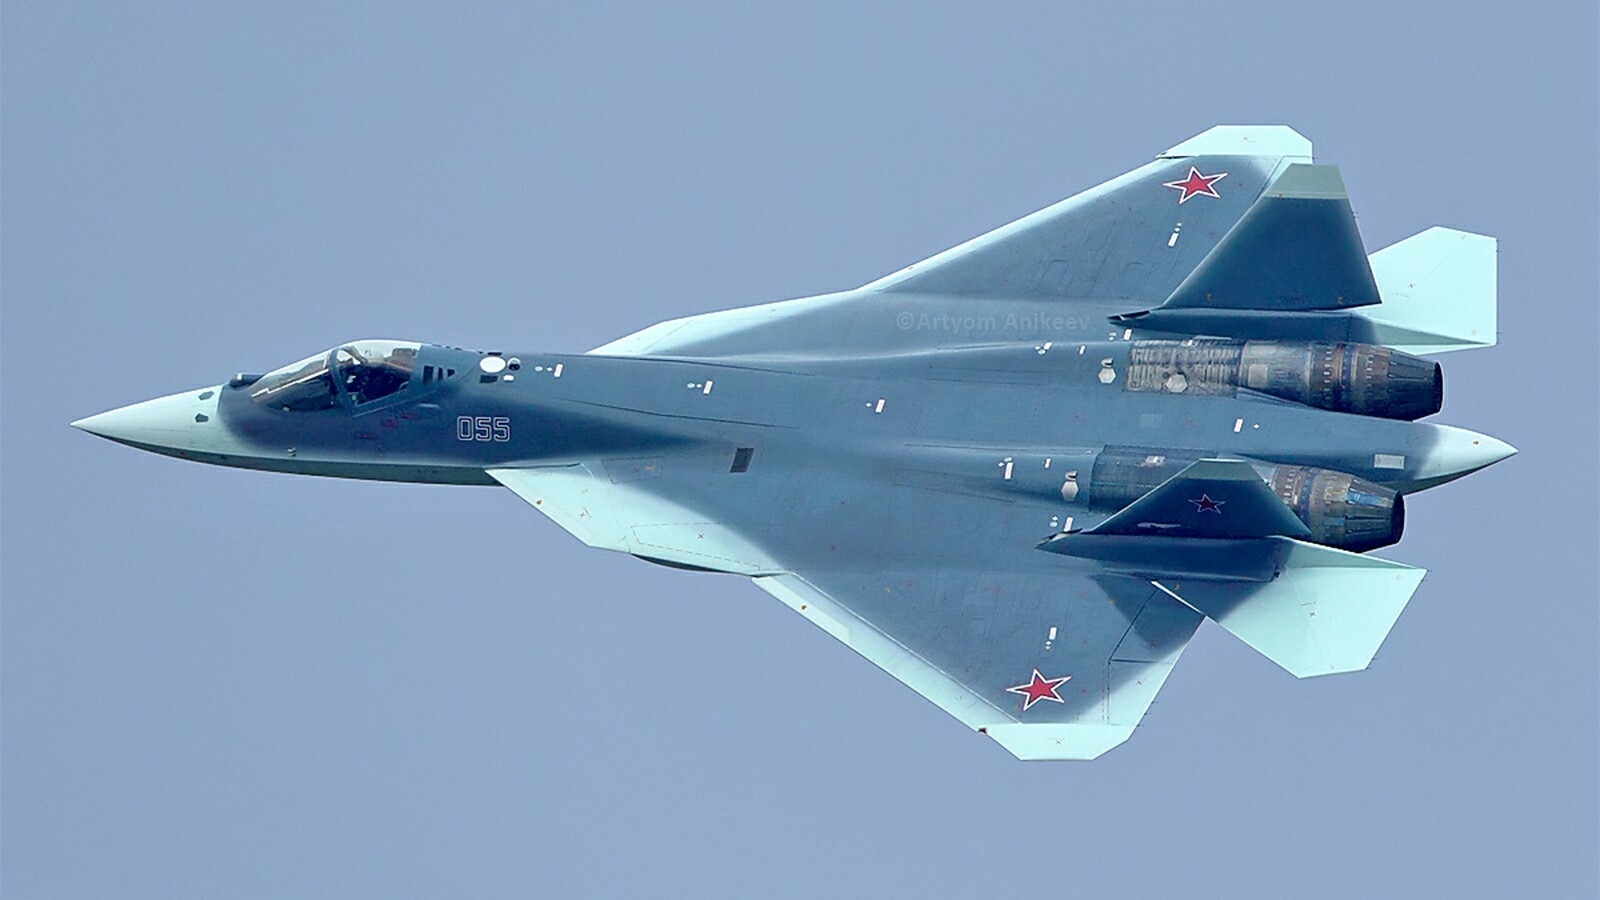 Russia's New Sukhoi Su-57 Stealth Fighter Jet Crashes During Testing